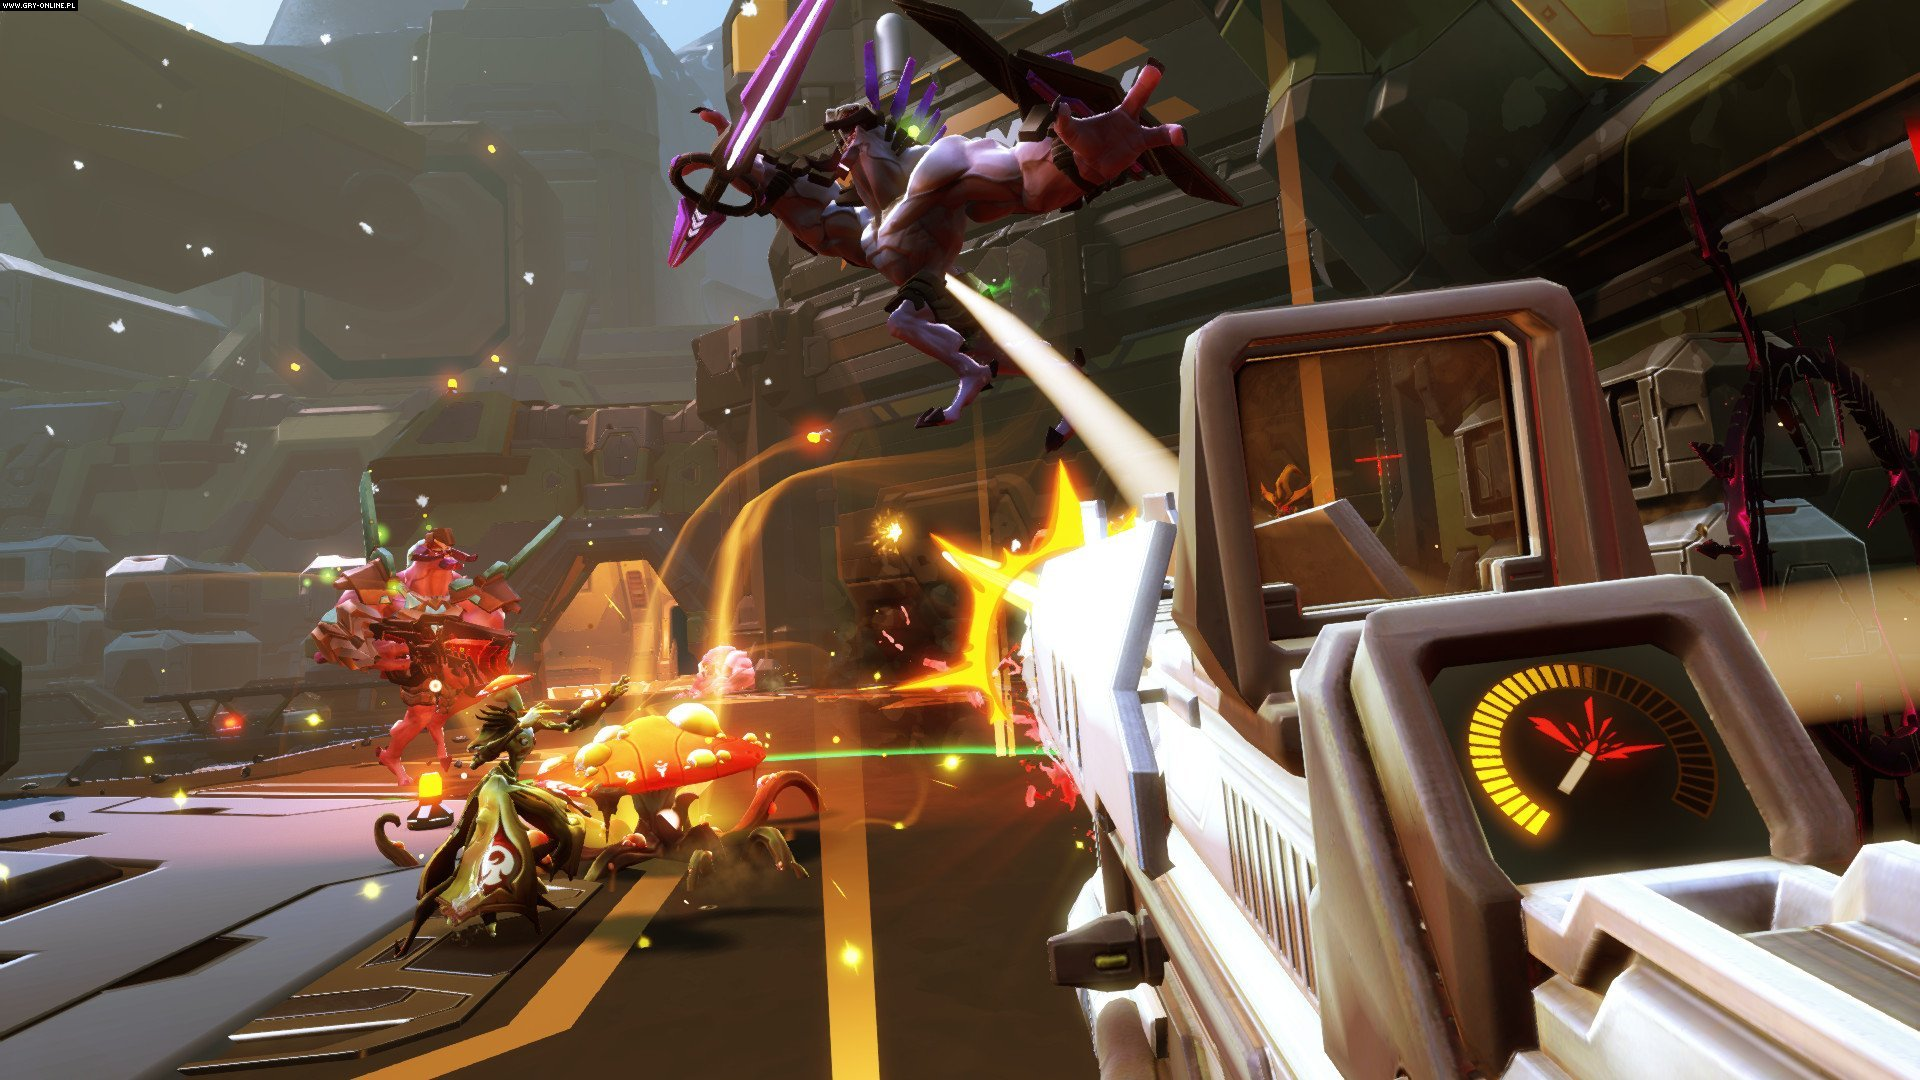 Battleborn PC, PS4, XONE Games Image 90/97, Gearbox Software, 2K Games